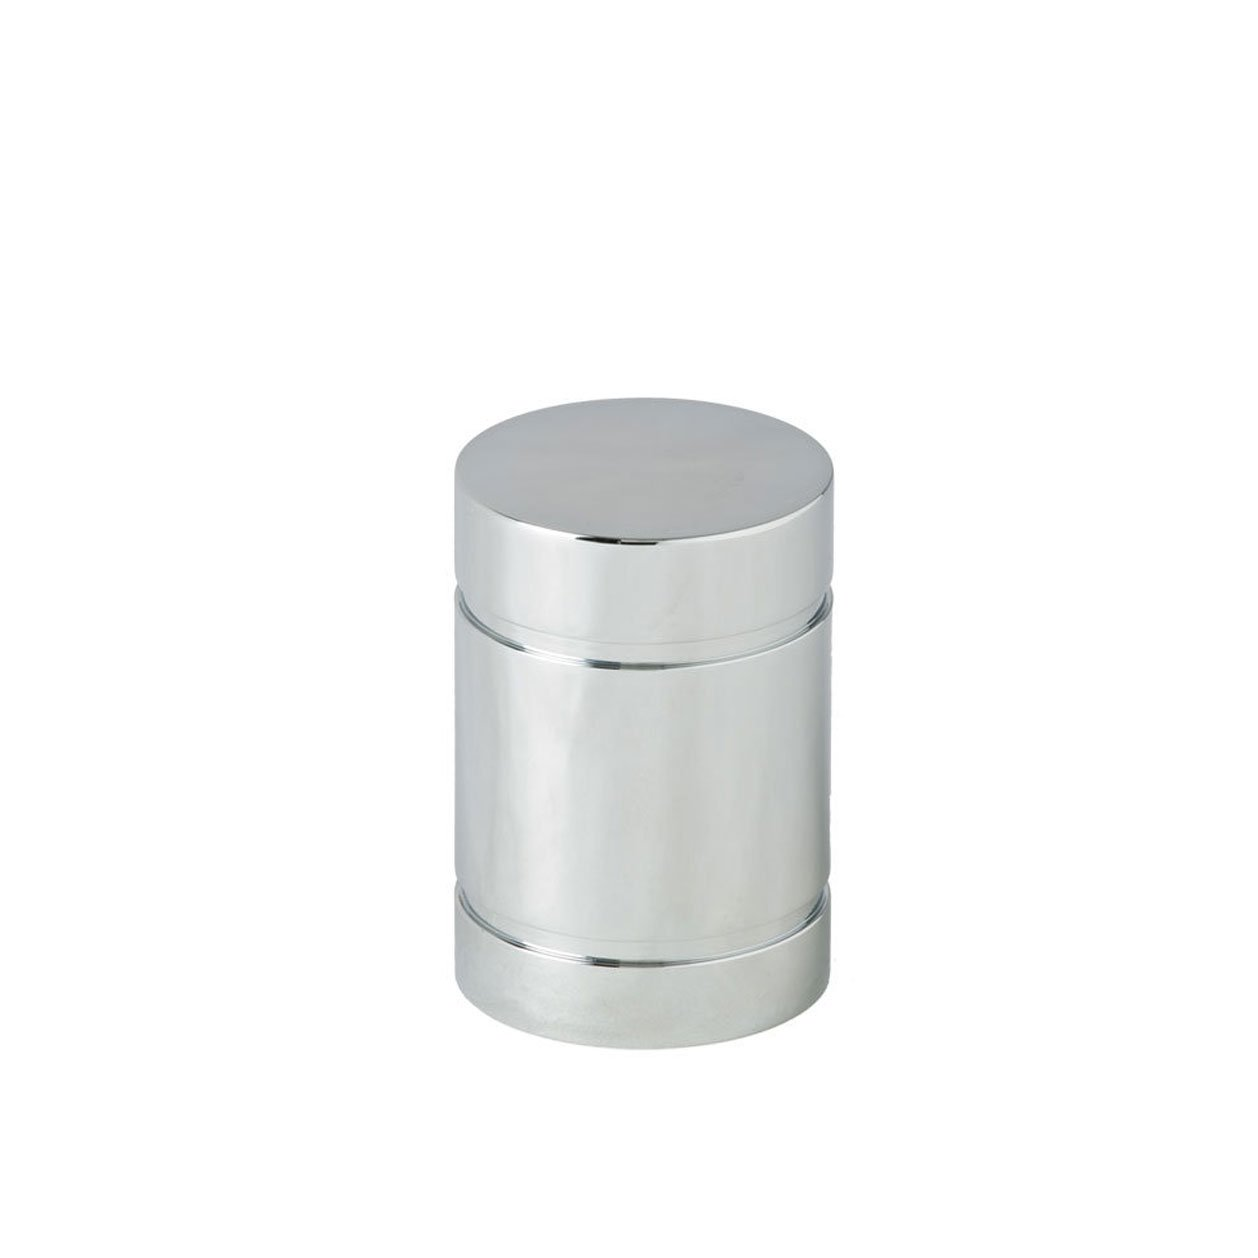 Waterstone 3020-PN Contemporary Air Gap Single Port, Polished Nickel